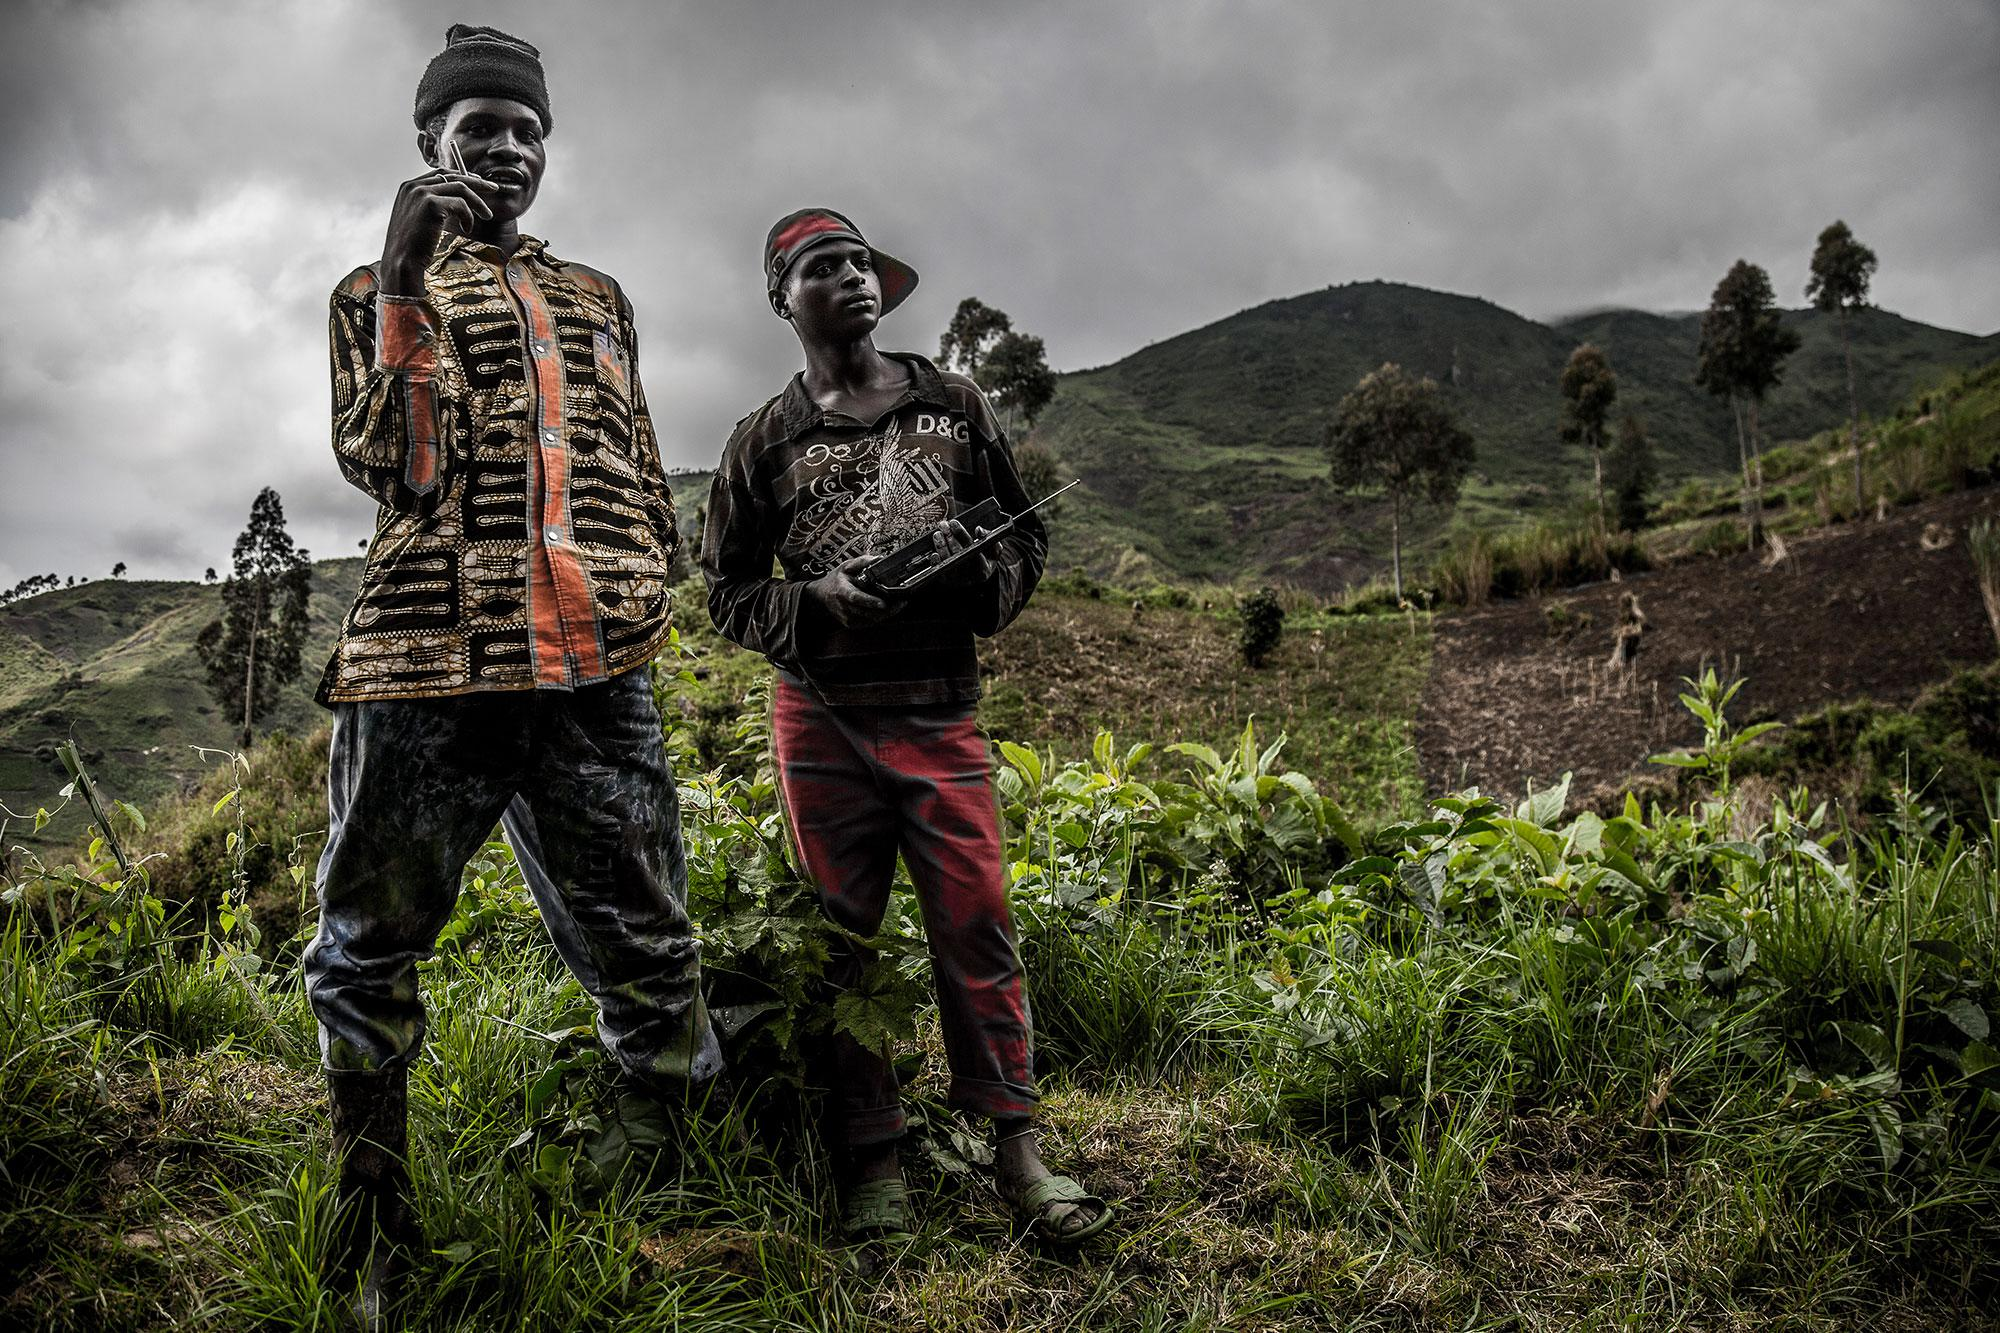 'Next of Kin': Portraits in a time of conflict